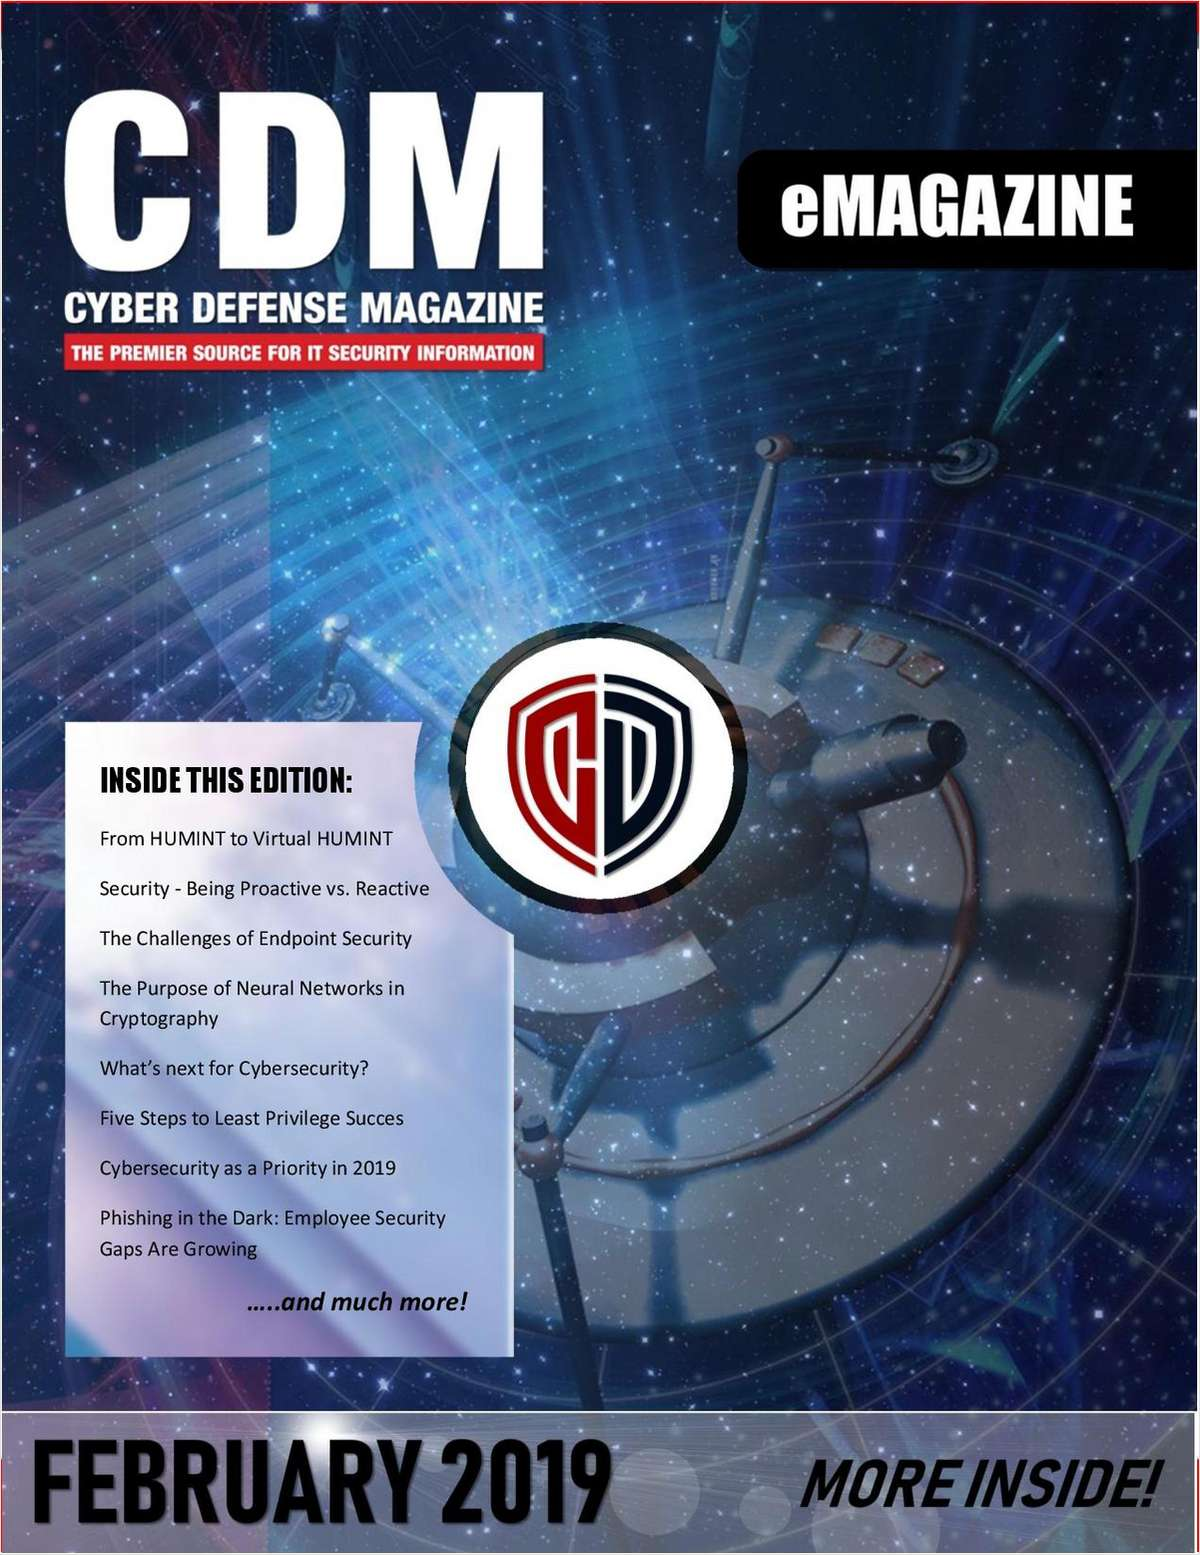 Cyber Defense eMagazine - What's Next for Cybersecurity - February 2019 Edition